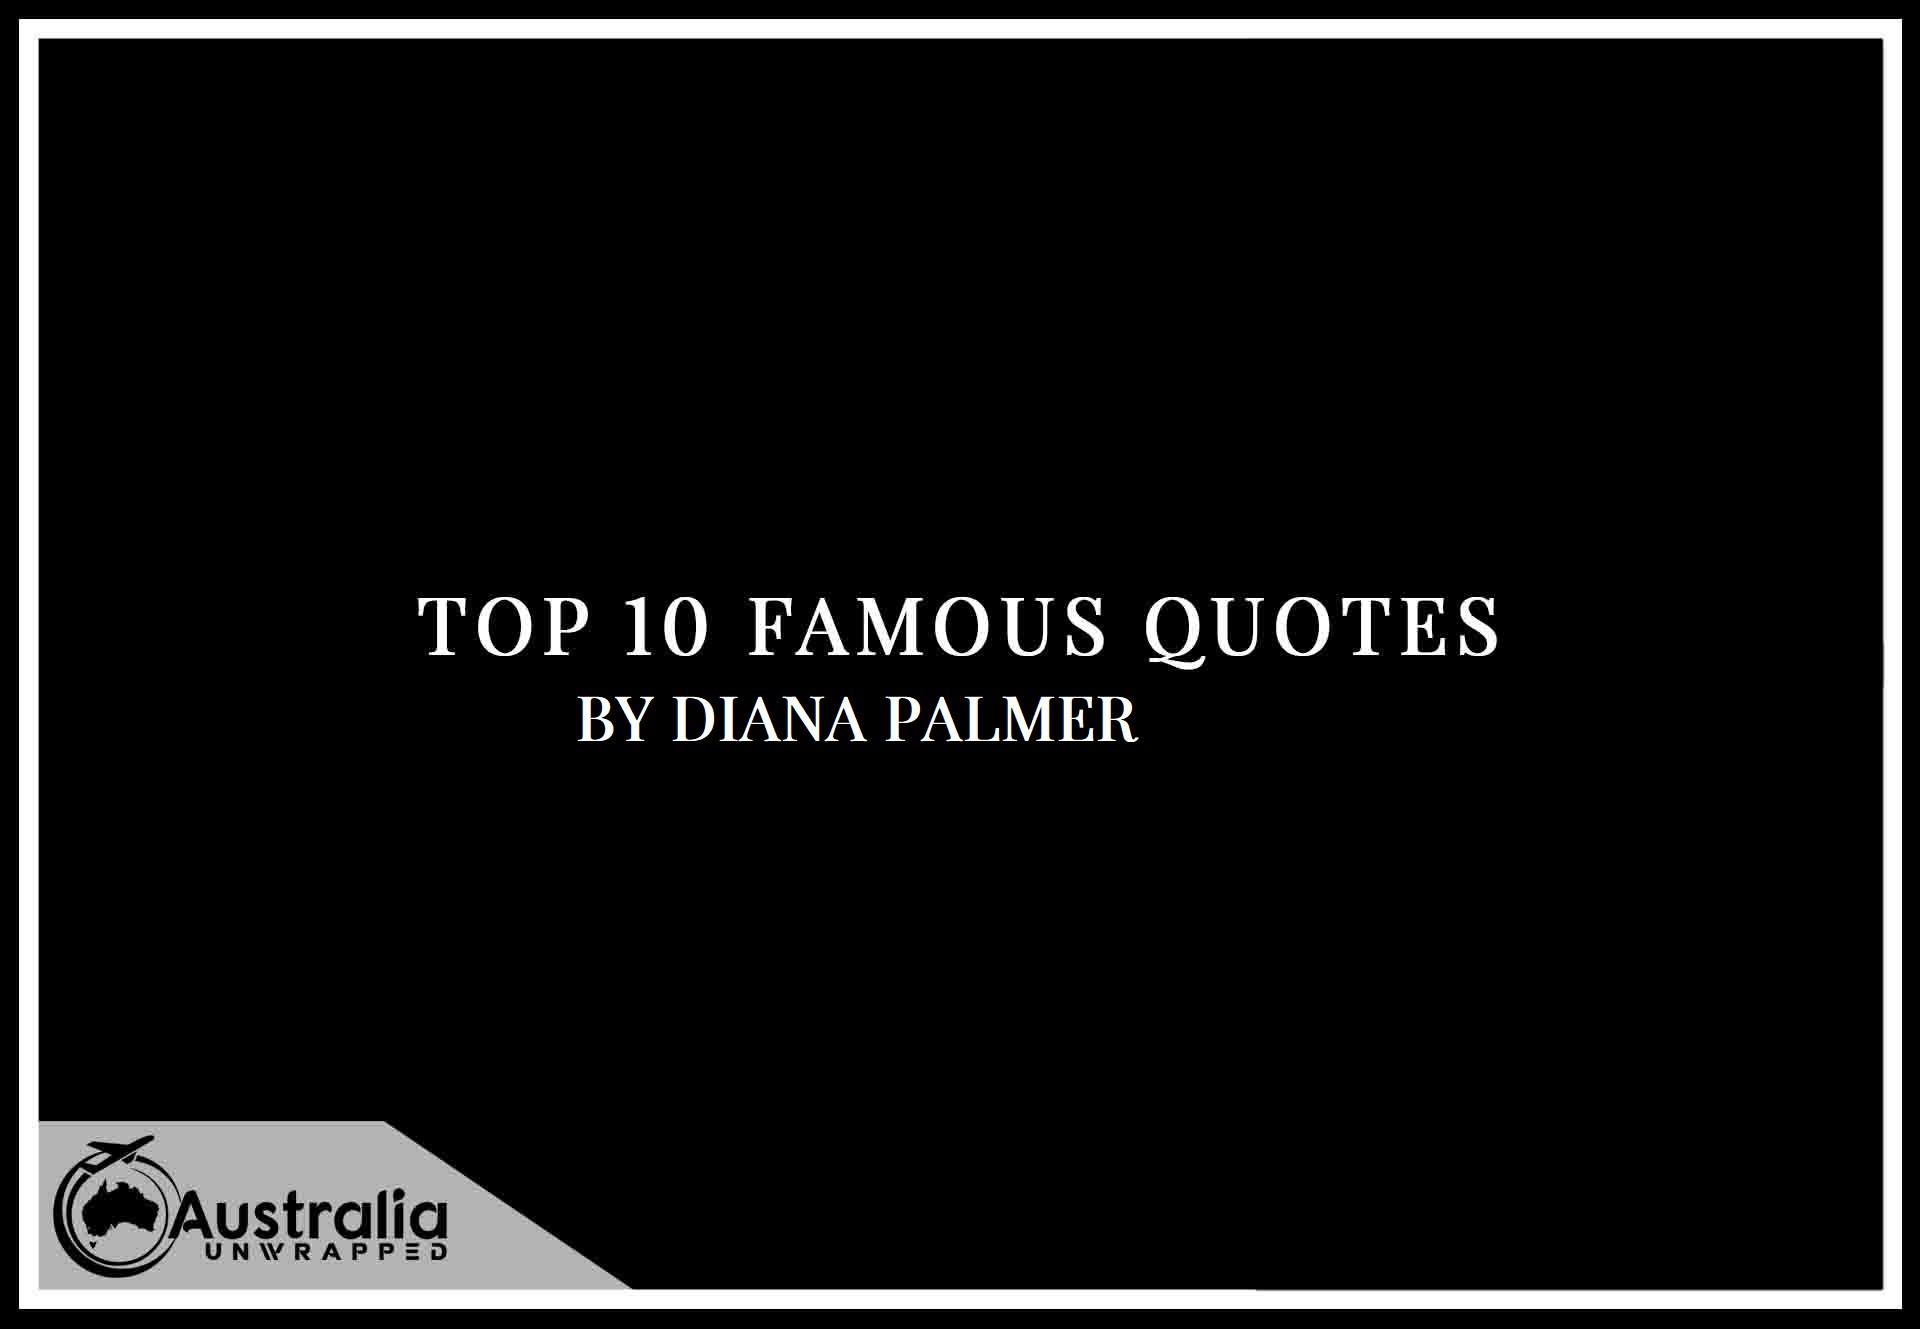 Top 10 Famous Quotes by Author Diana Palmer